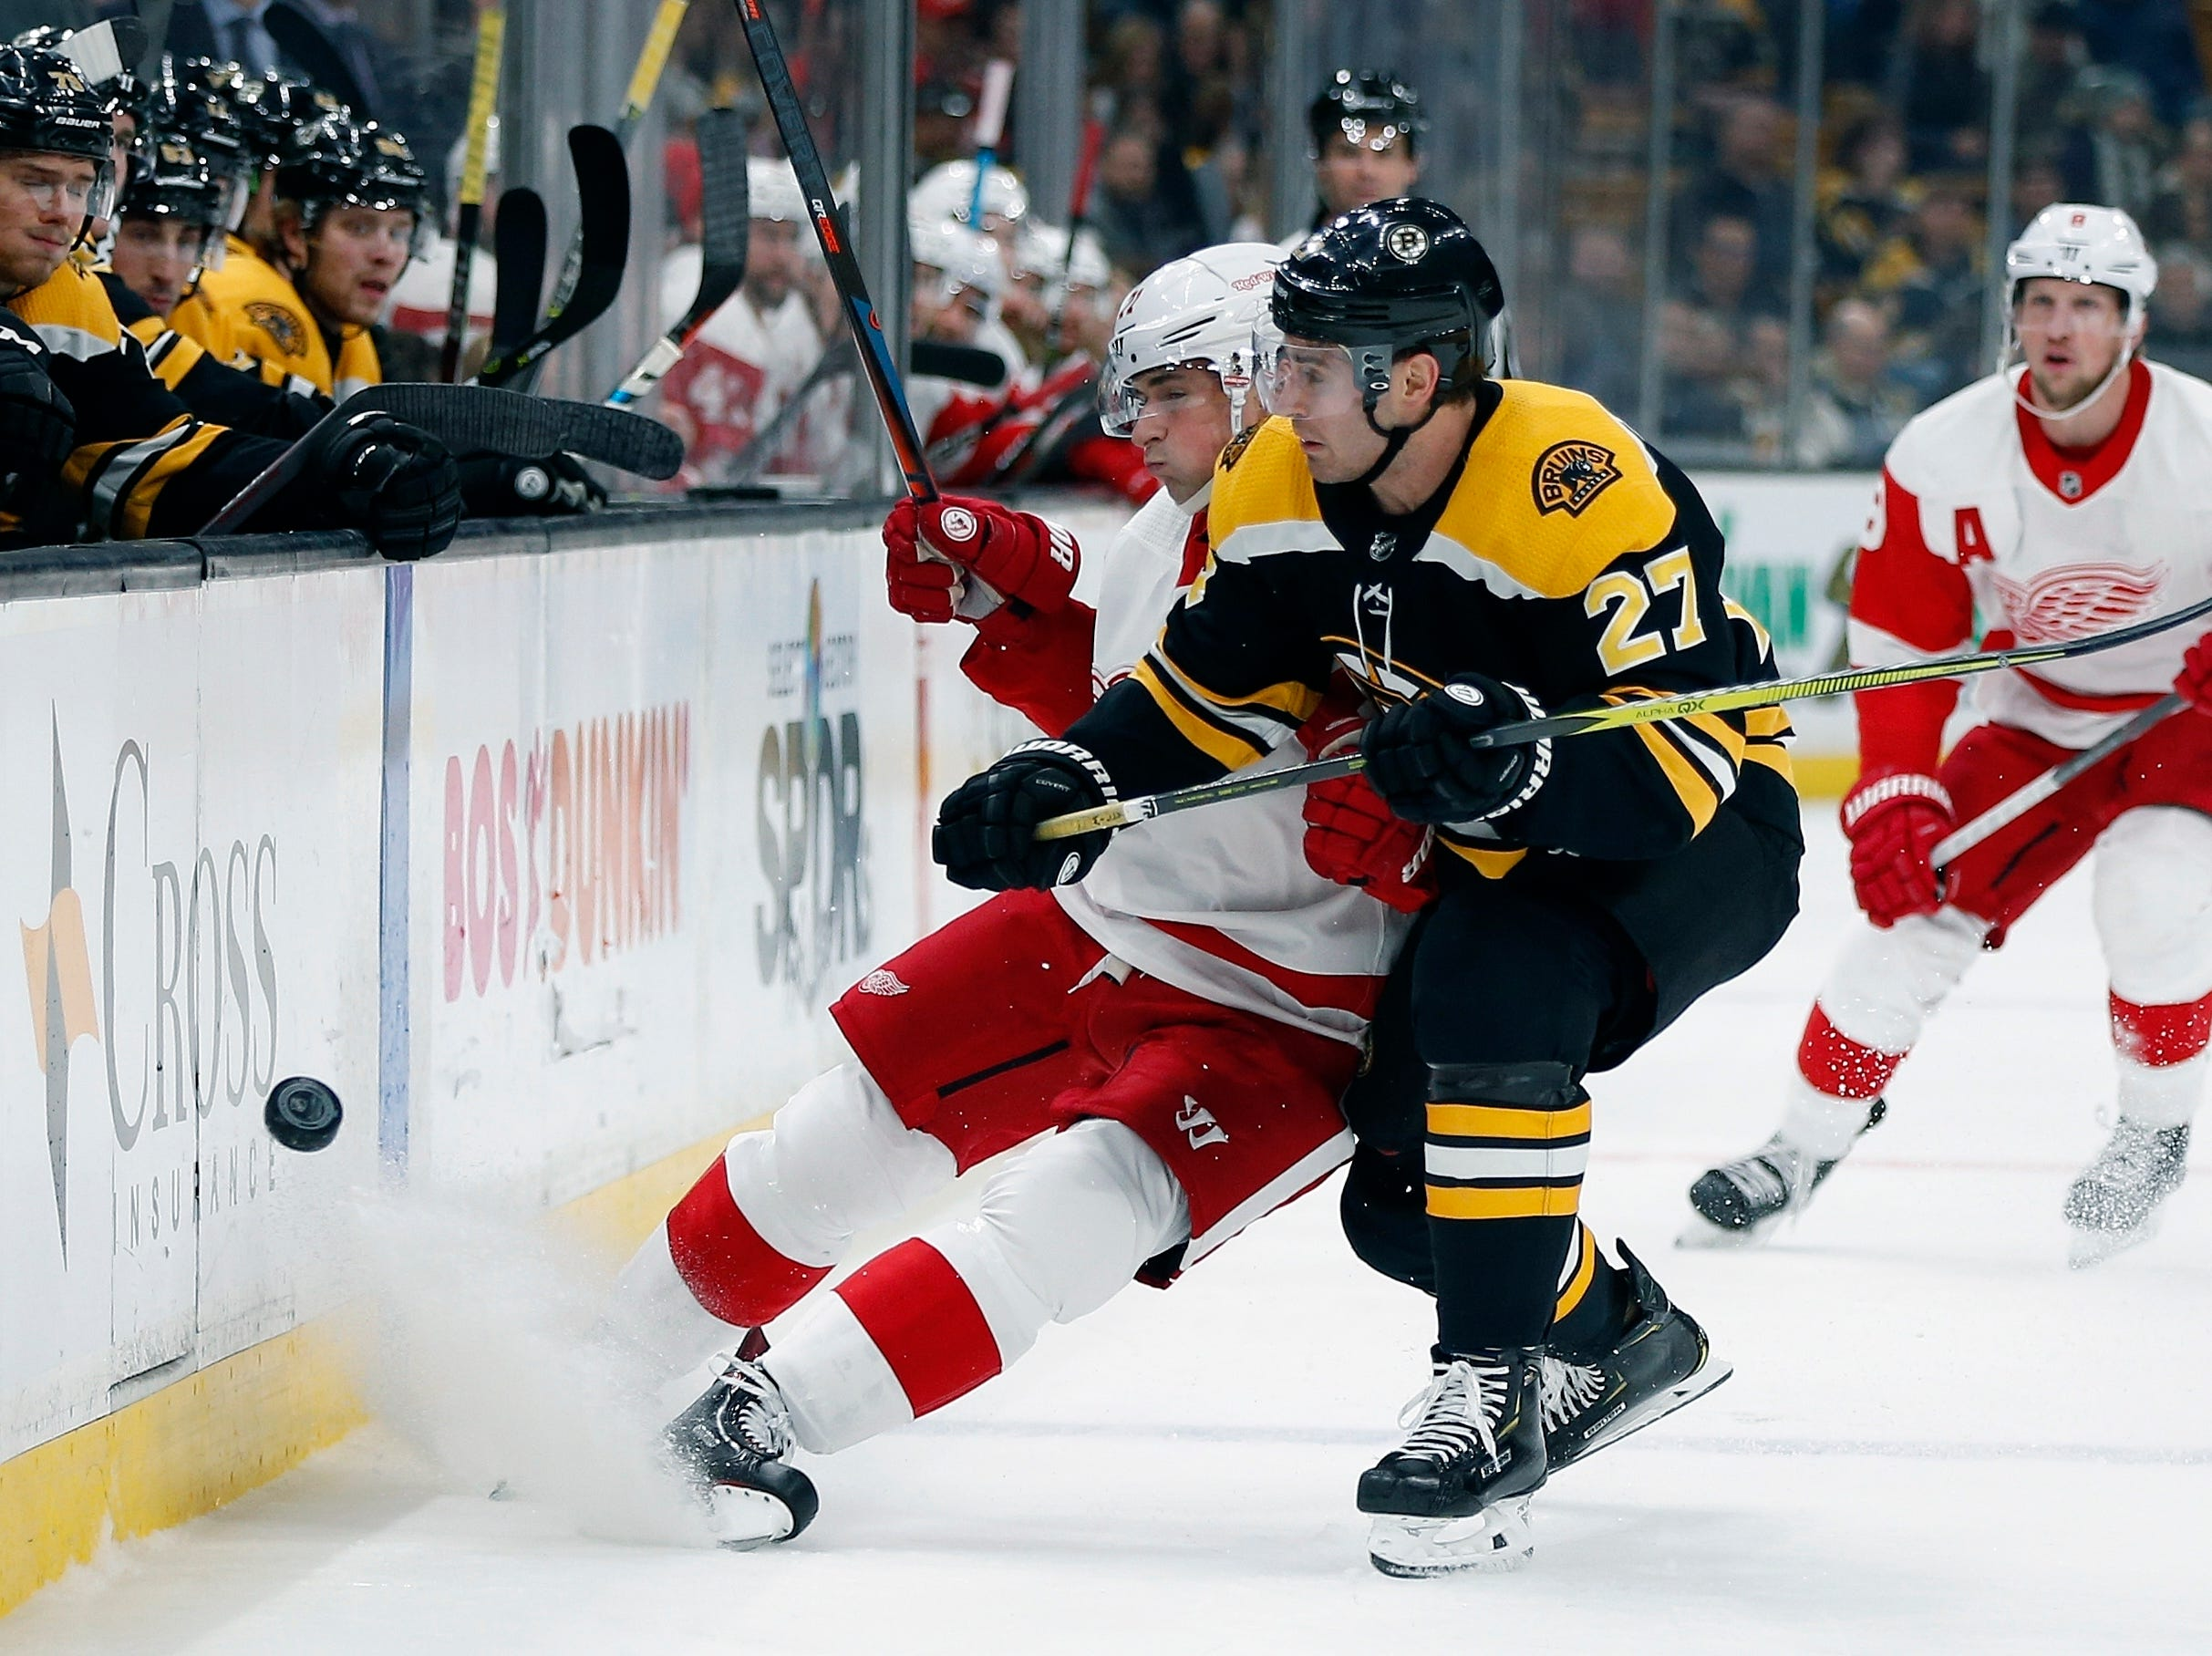 Boston Bruins' John Moore (27) battles Detroit Red Wings' Dylan Larkin, center left, for the puck during the first period in Boston, Saturday, Dec. 1, 2018.